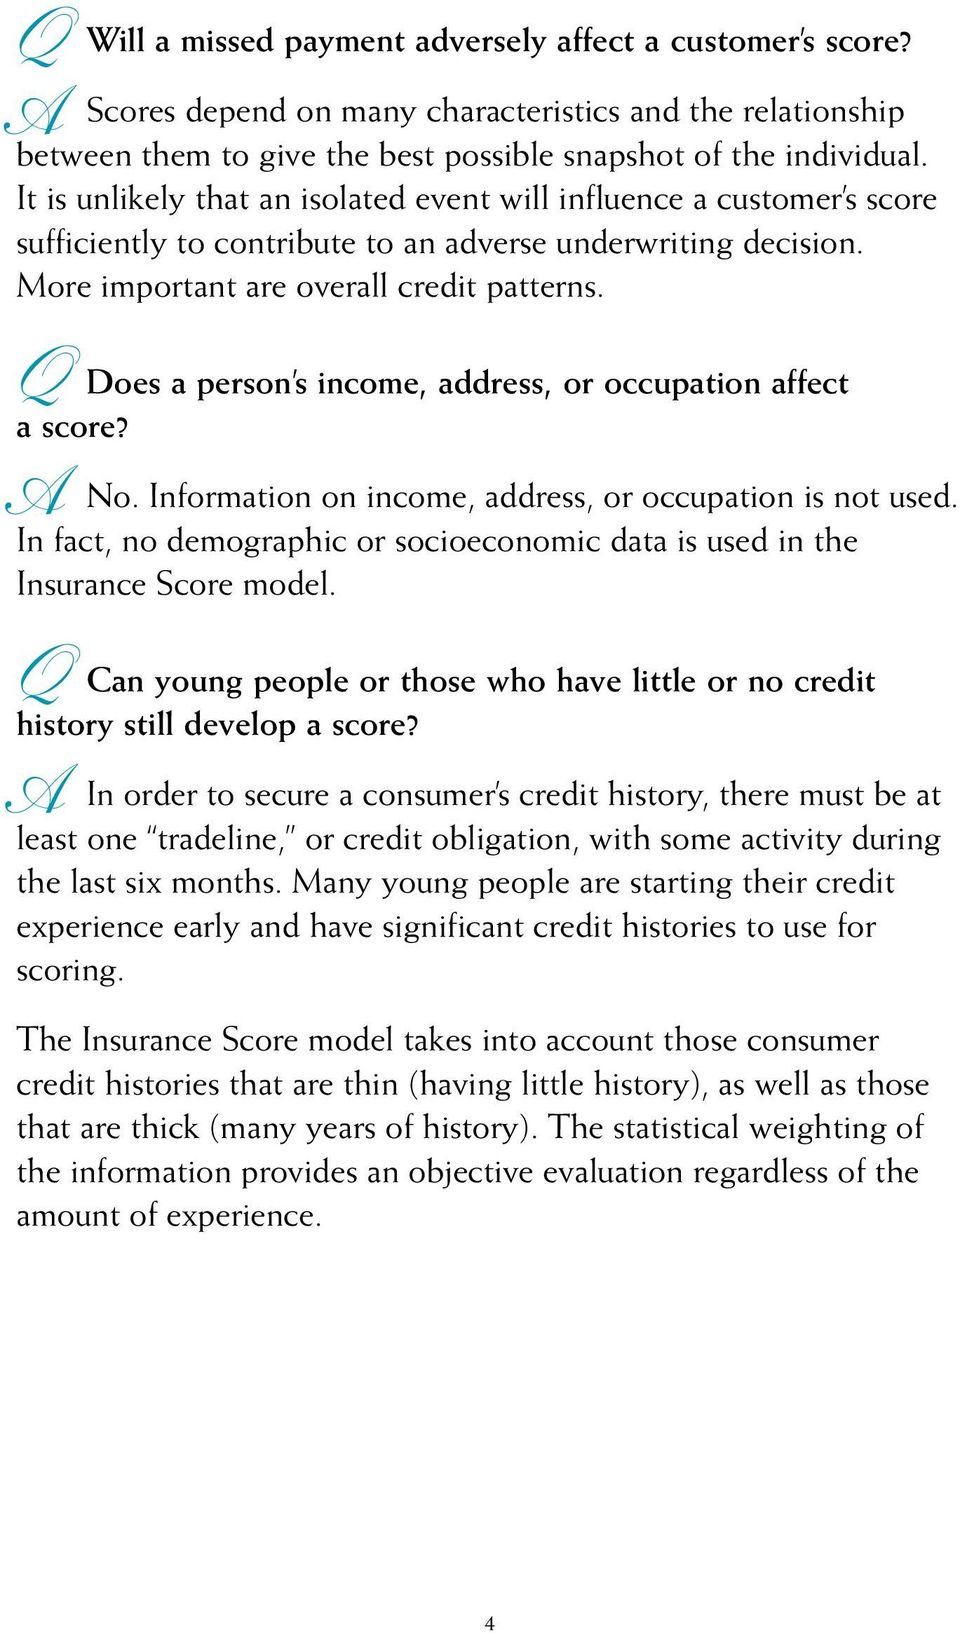 Does a person s income, address, or occupation affect a score? No. Information on income, address, or occupation is not used.